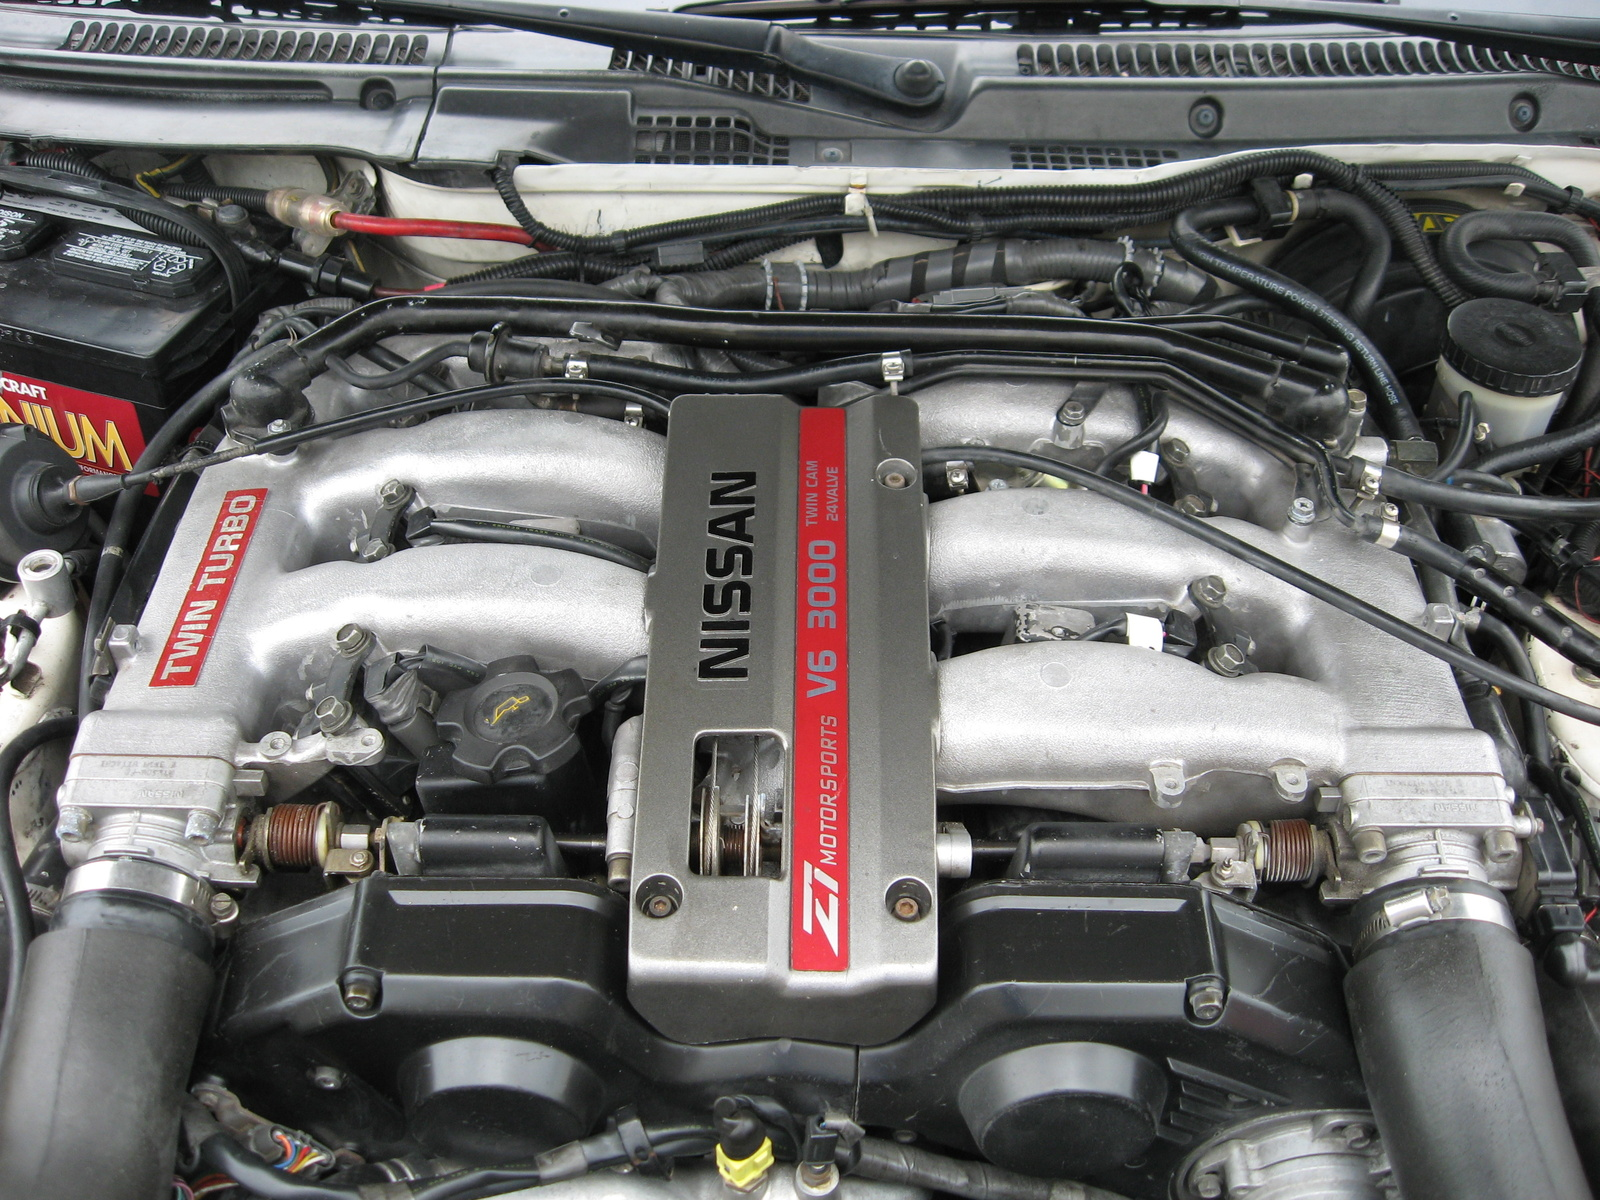 1991 Nissan 300zx - Other Pictures